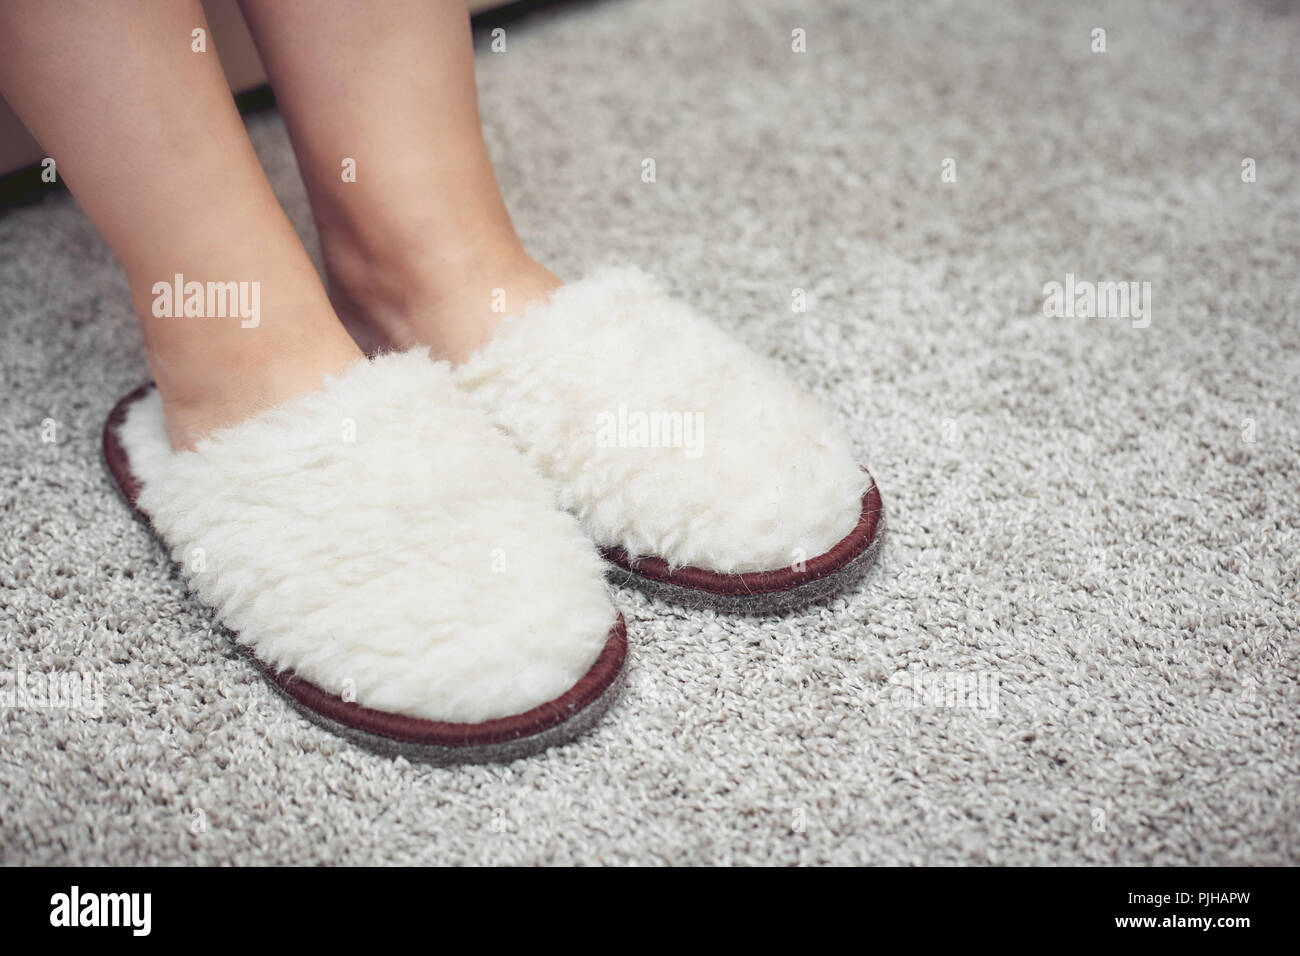 a7098147a8185 women's feet in fur Slippers on a warm carpet Stock Photo: 217969889 ...